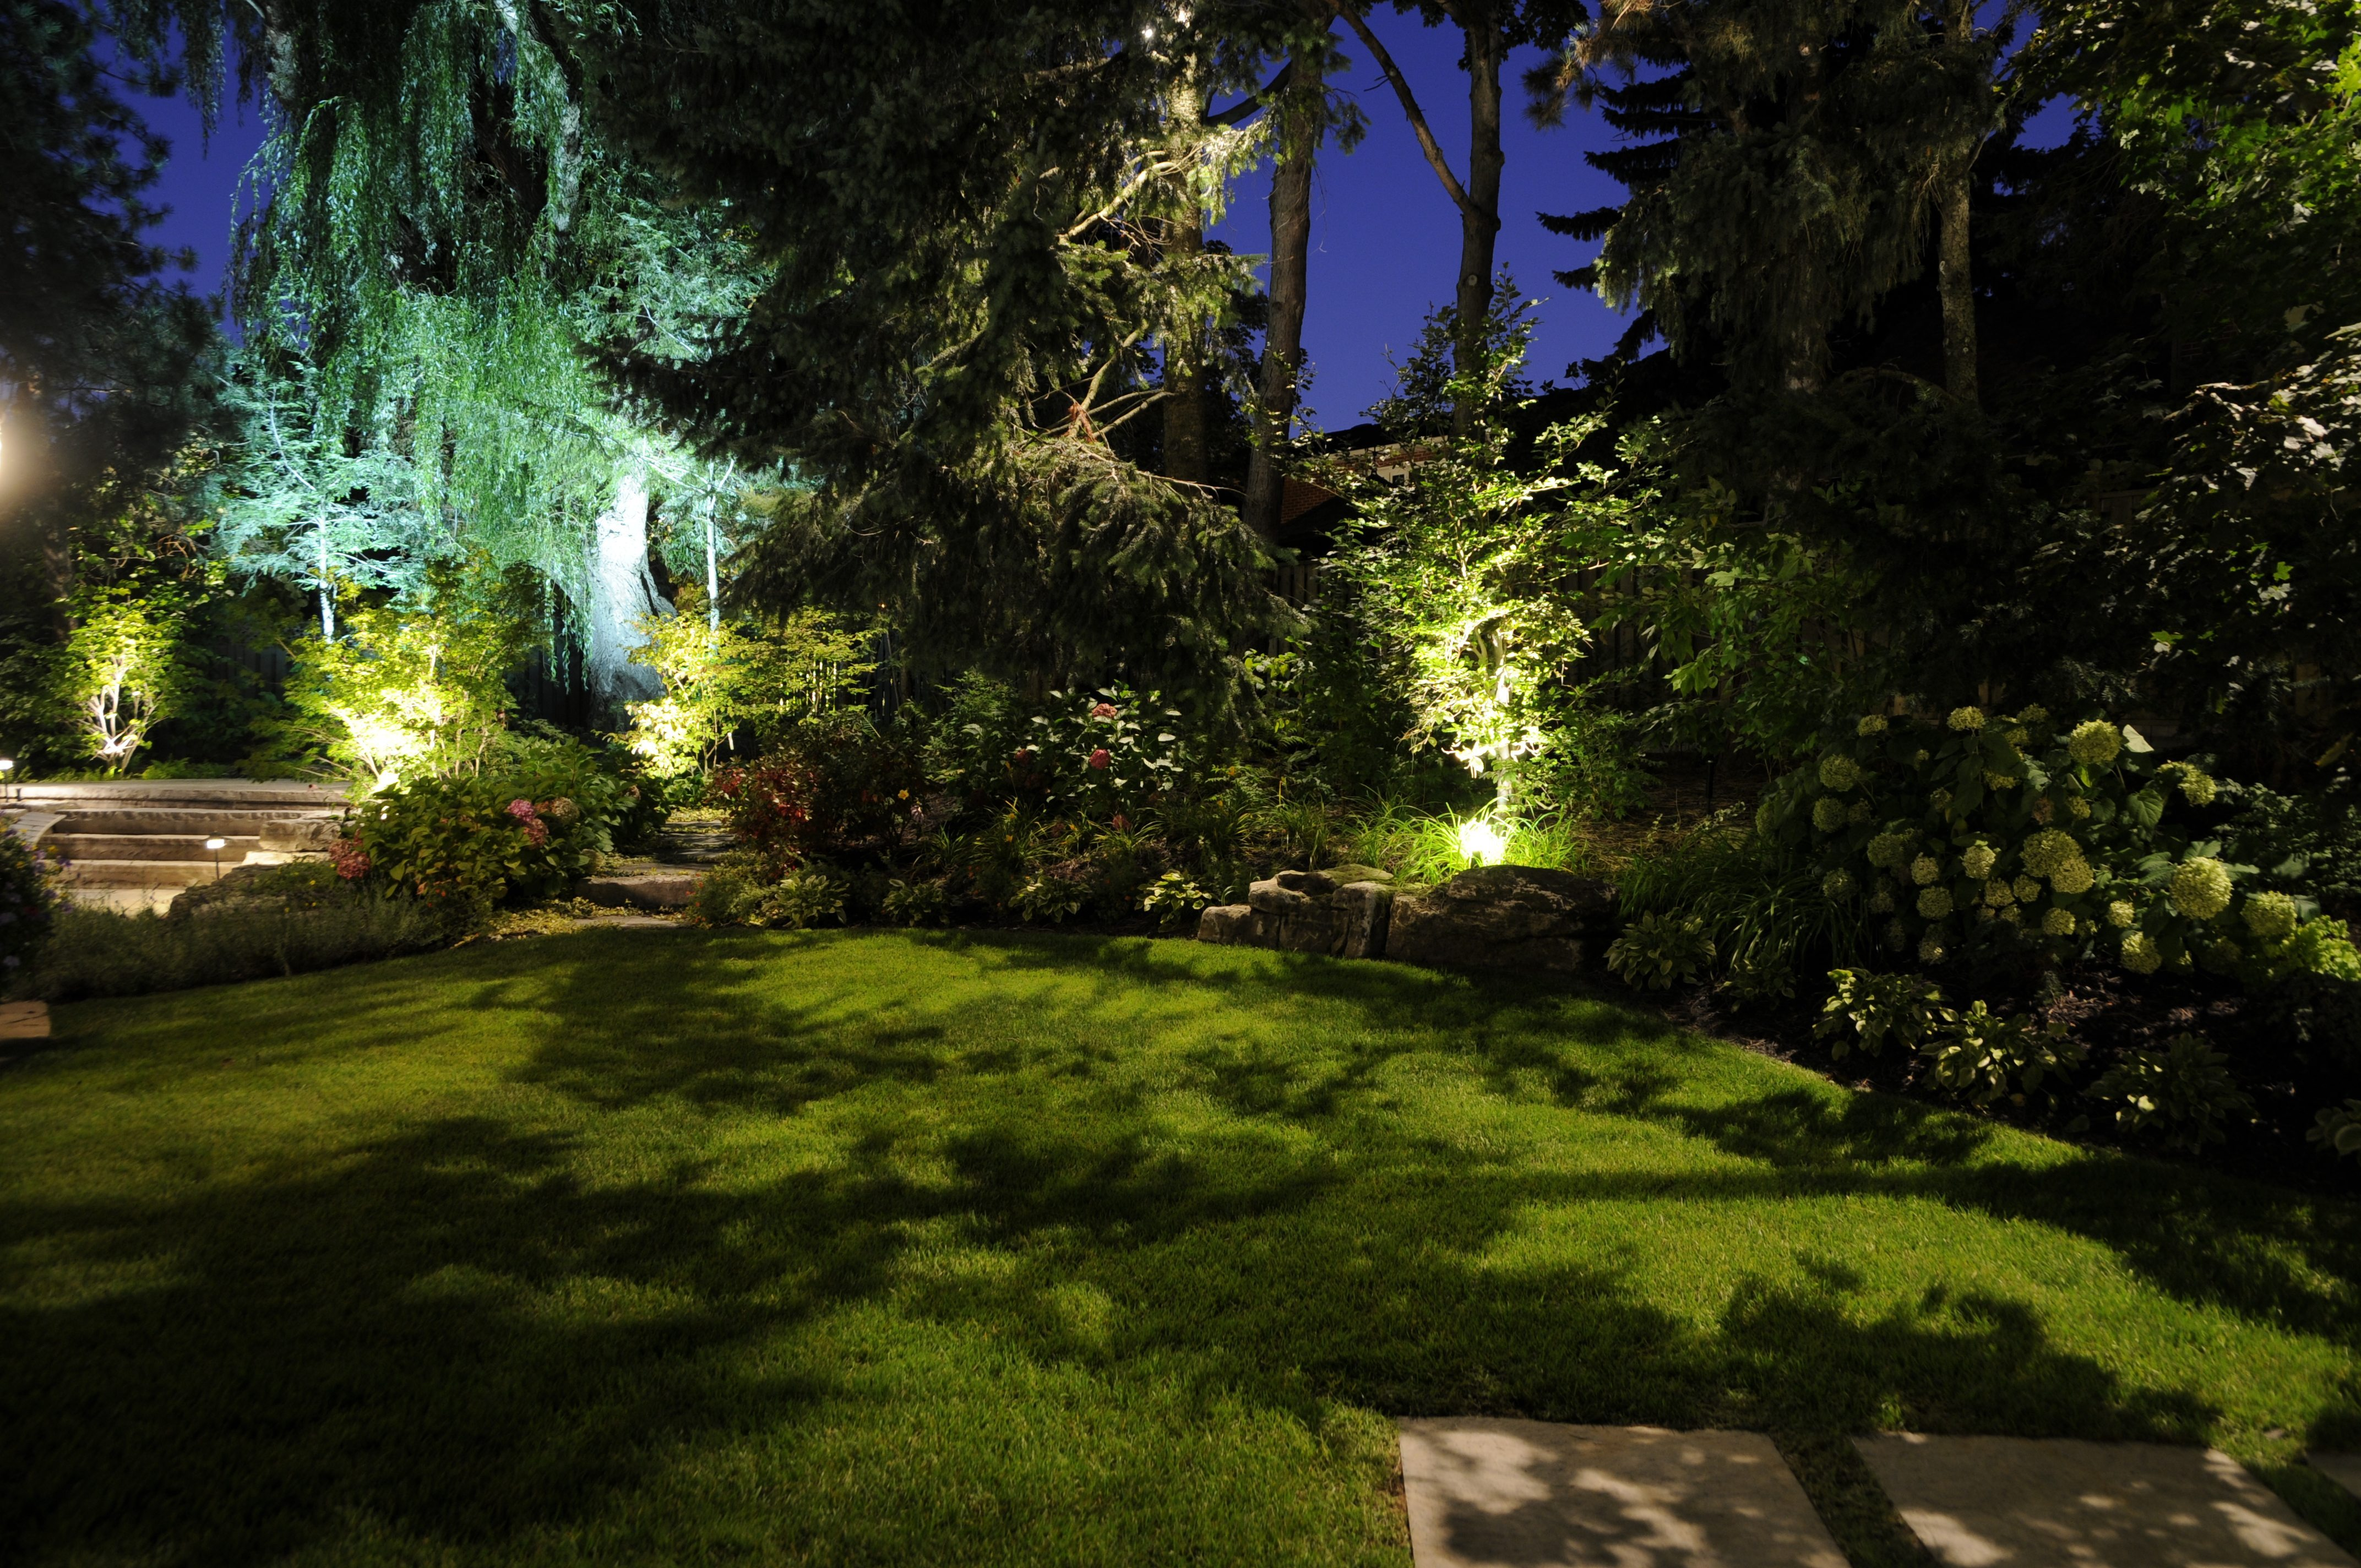 Sitzer_2-Down Lighting Back Yard-Plaque.jpeg